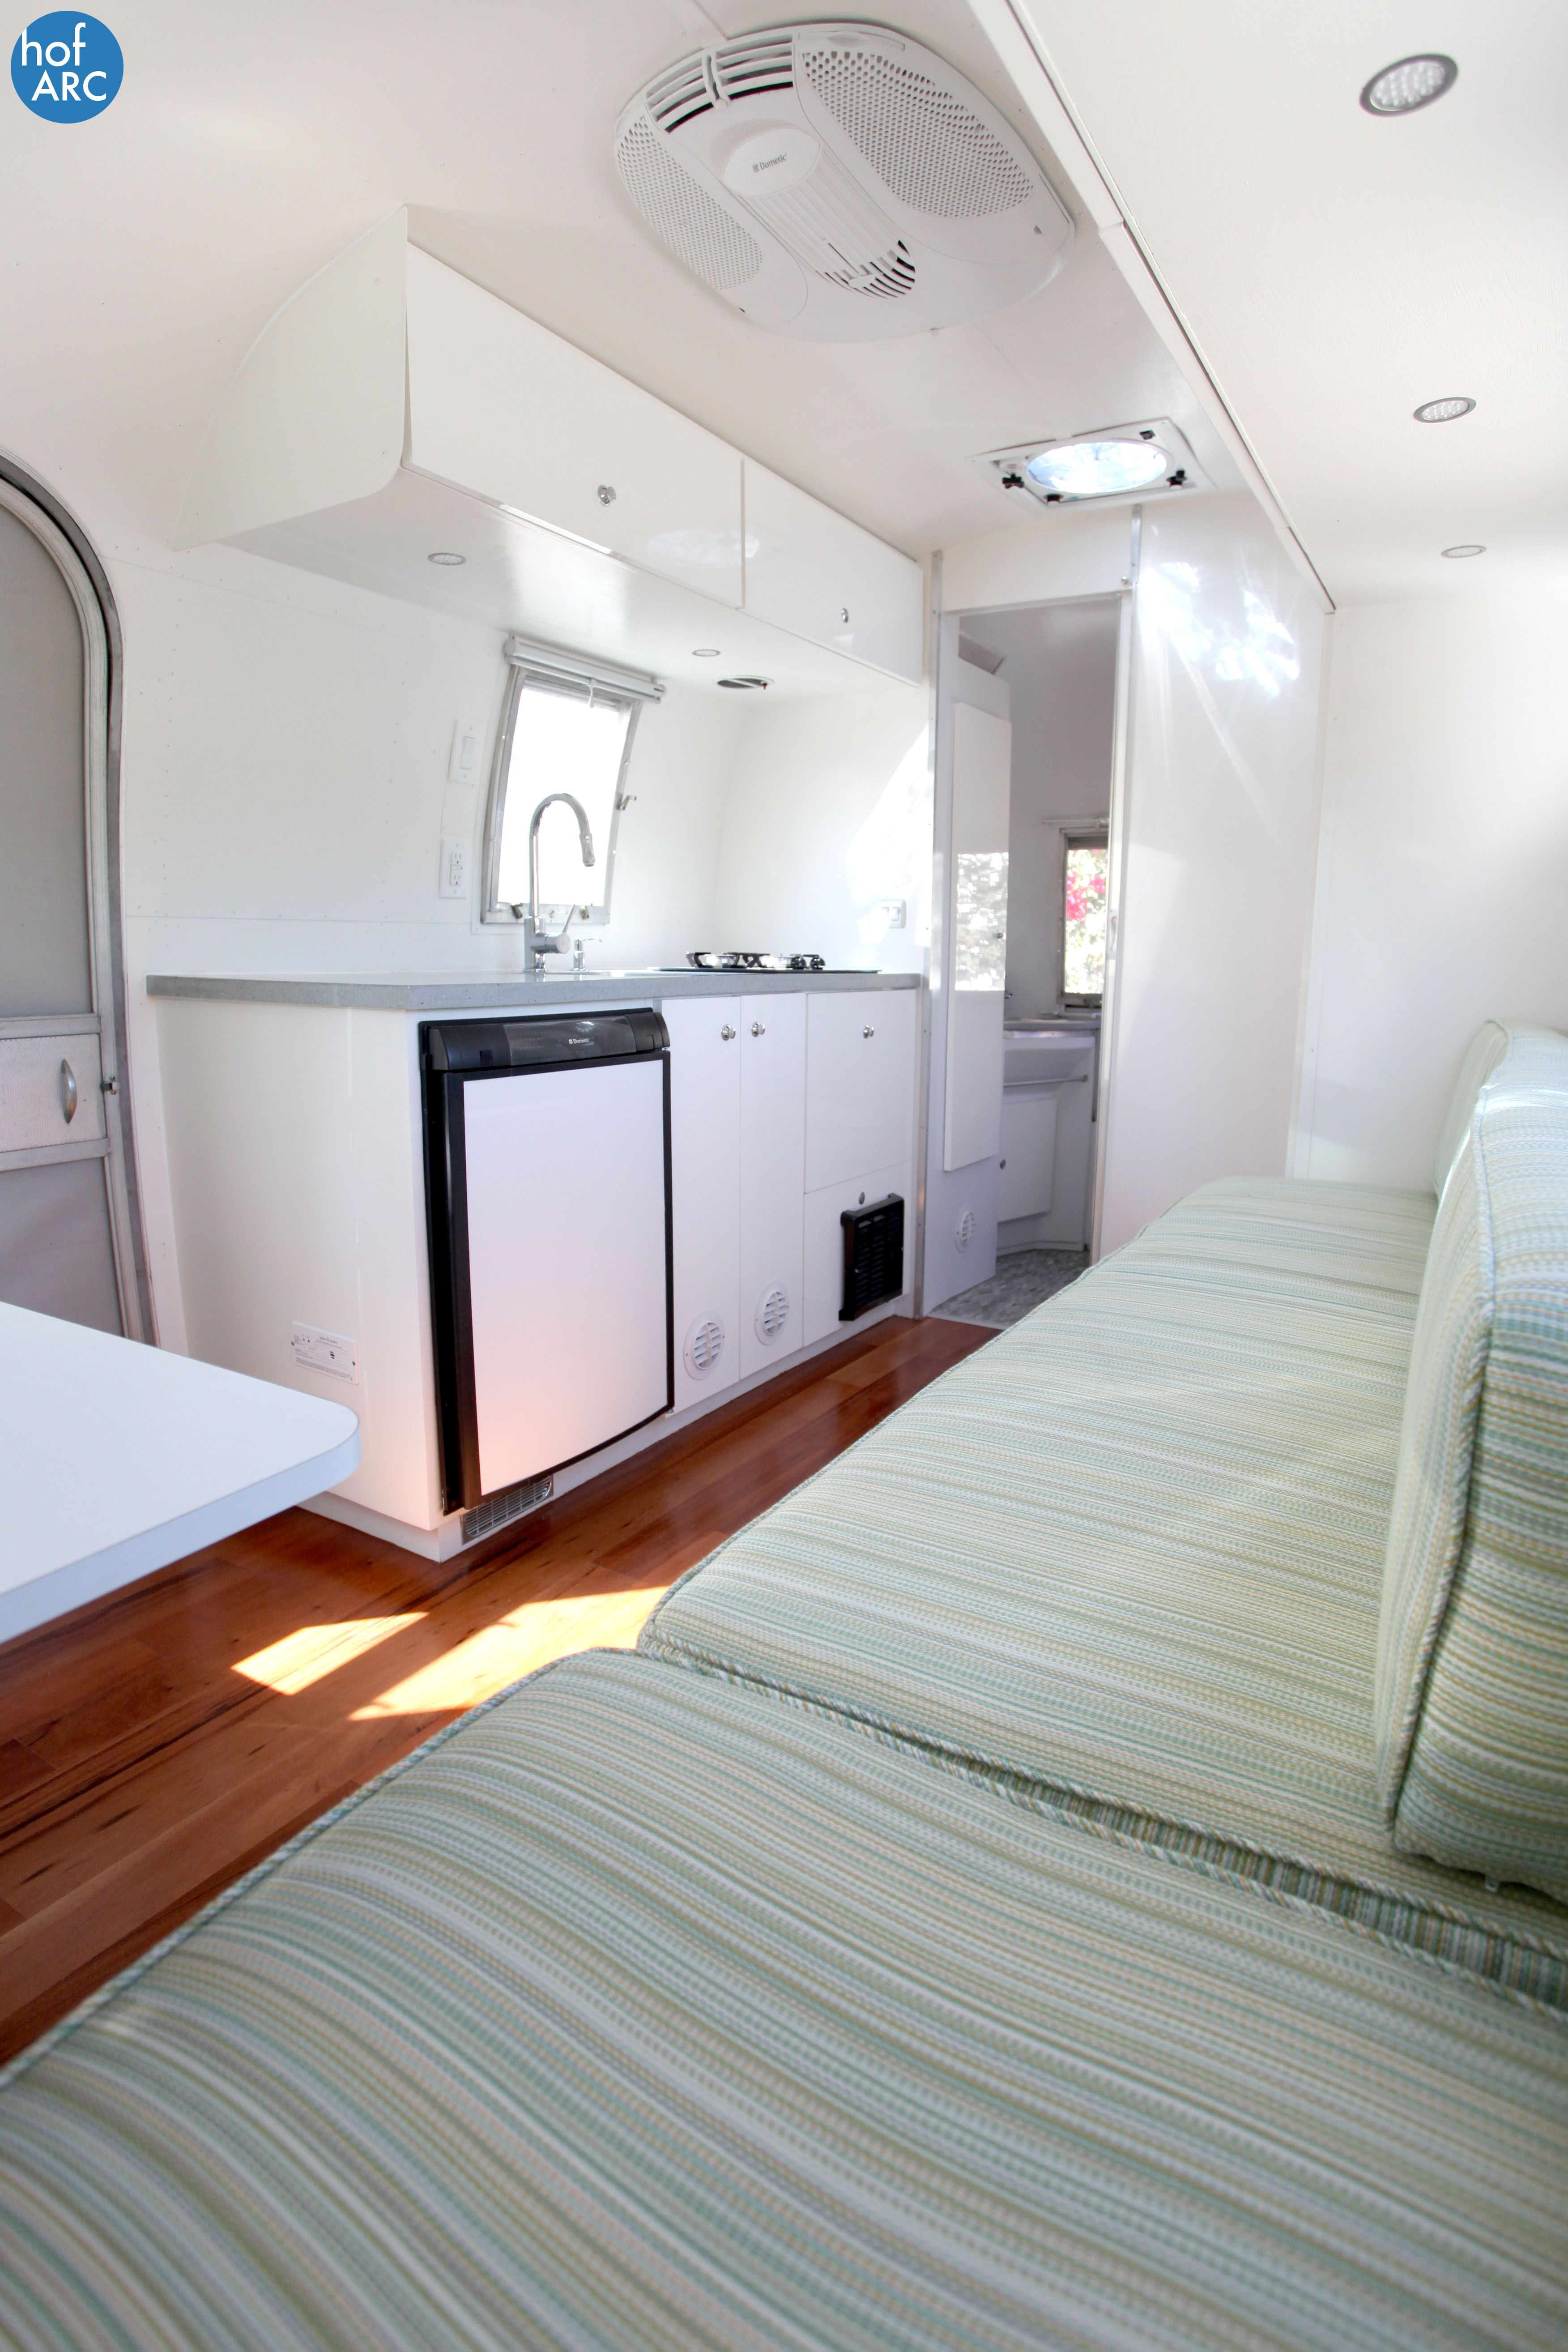 1967 Airstream Globetrotter Alice renovated by HofArc. | RV ...